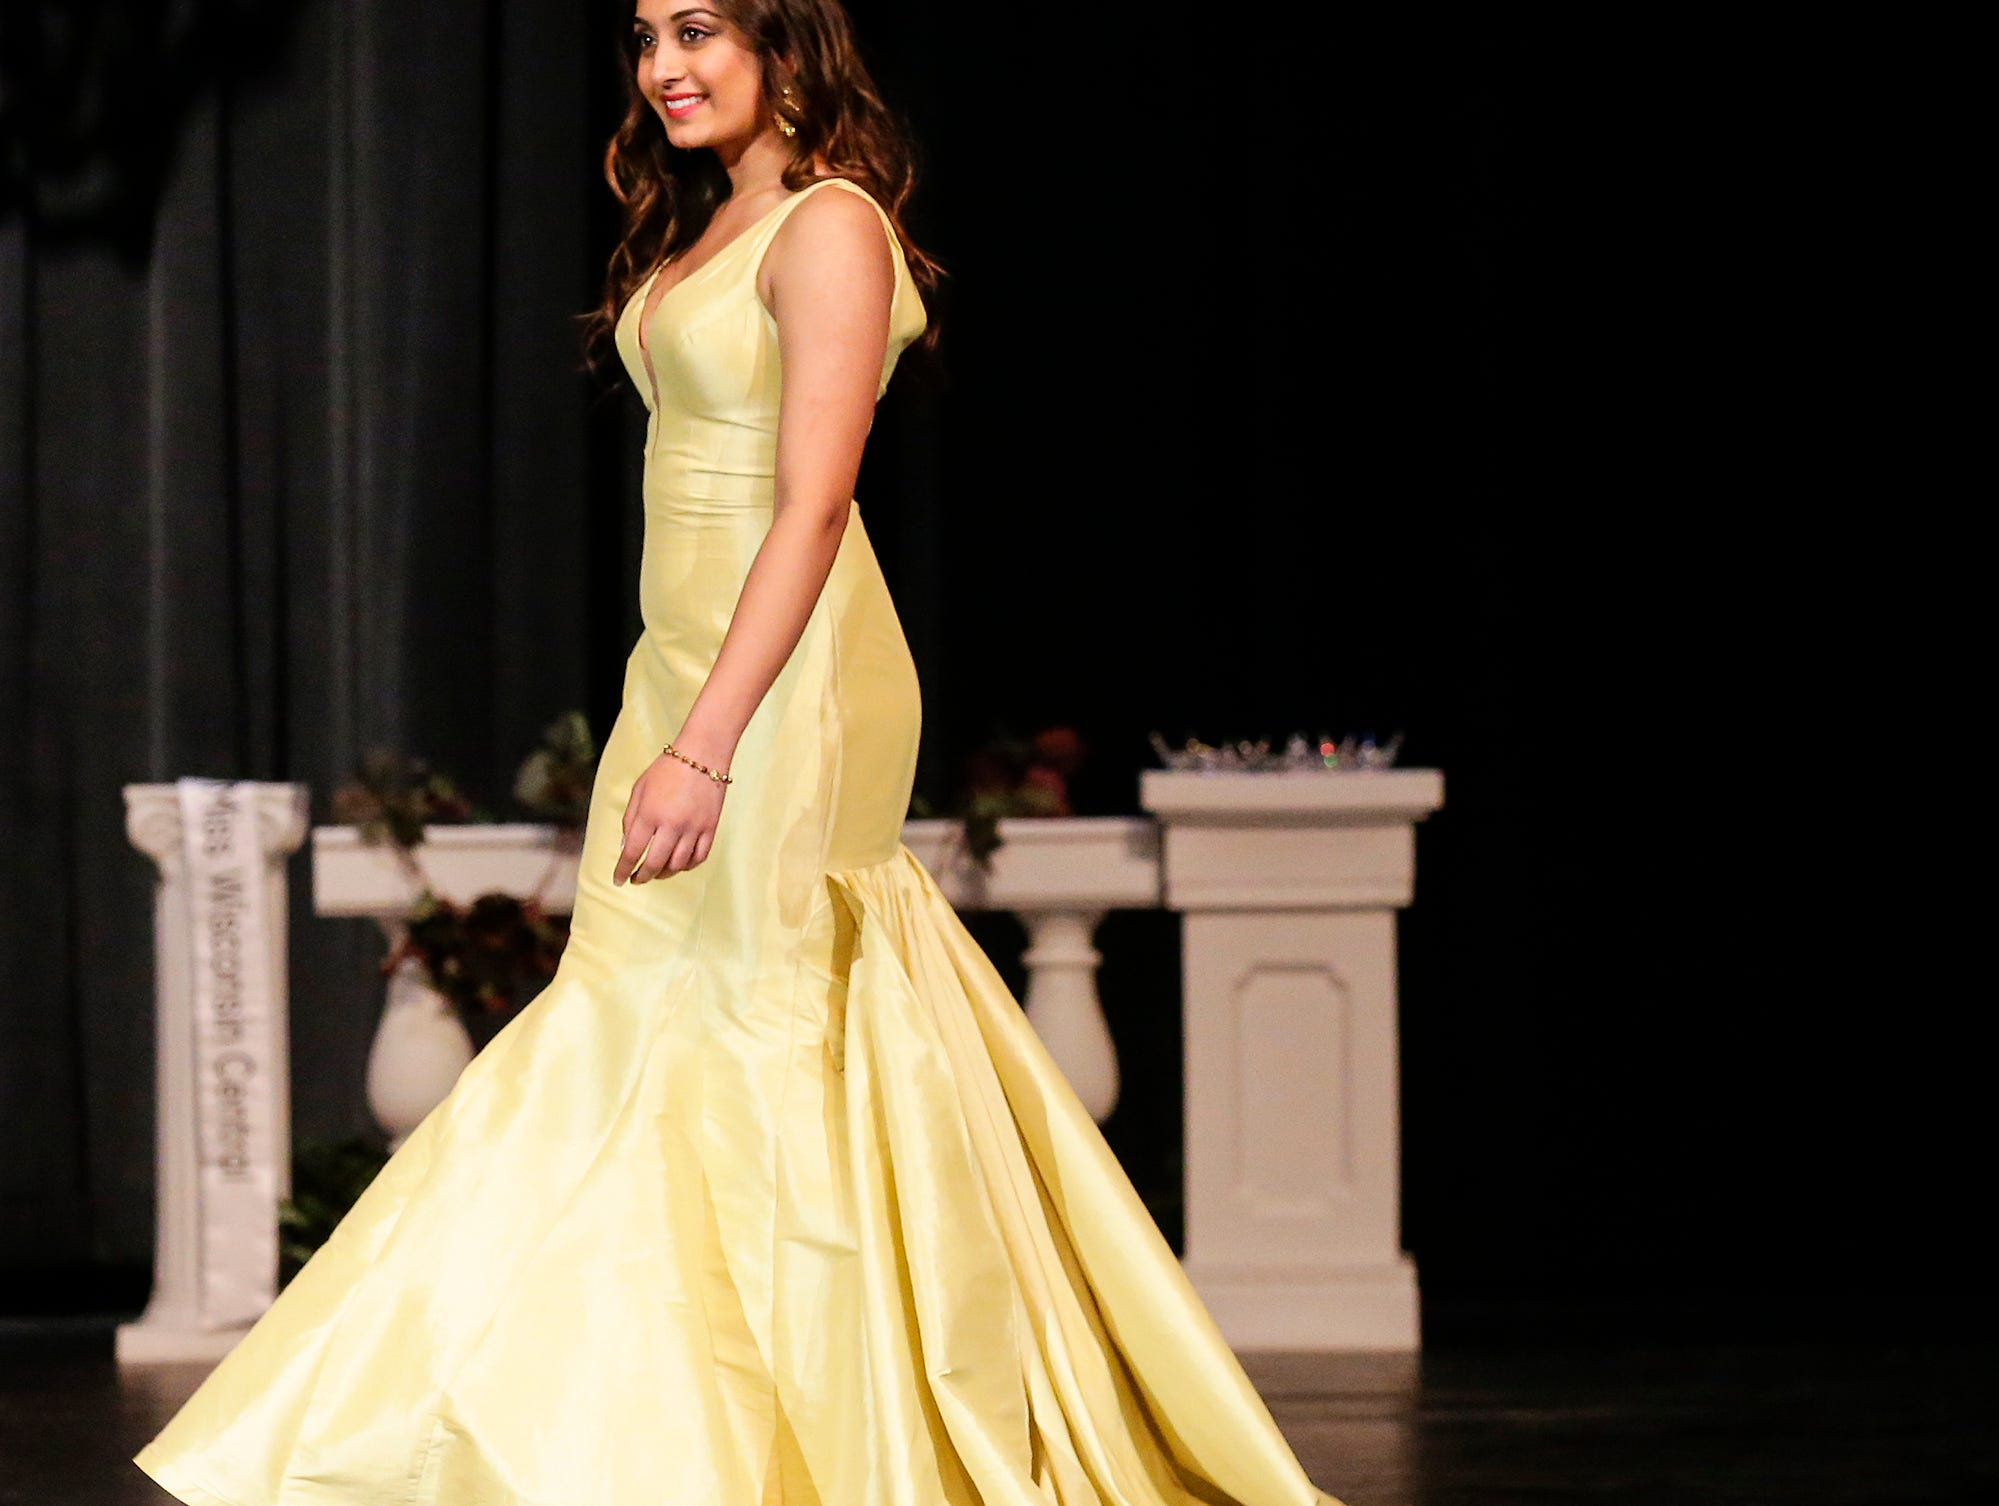 Miss Fond du Lac's Outstanding Teen contestant  Shafali Bhatt participates in the evening wear portion of the Miss Fond du Lac, Miss Wisconsin Central and Miss Fond du Lac's Outstanding Teen 2019 scholarship competitions Saturday, March 9, 2019 at the Goodrich Little Theater in Fond du Lac, Wis. Doug Raflik/USA TODAY NETWORK-Wisconsin